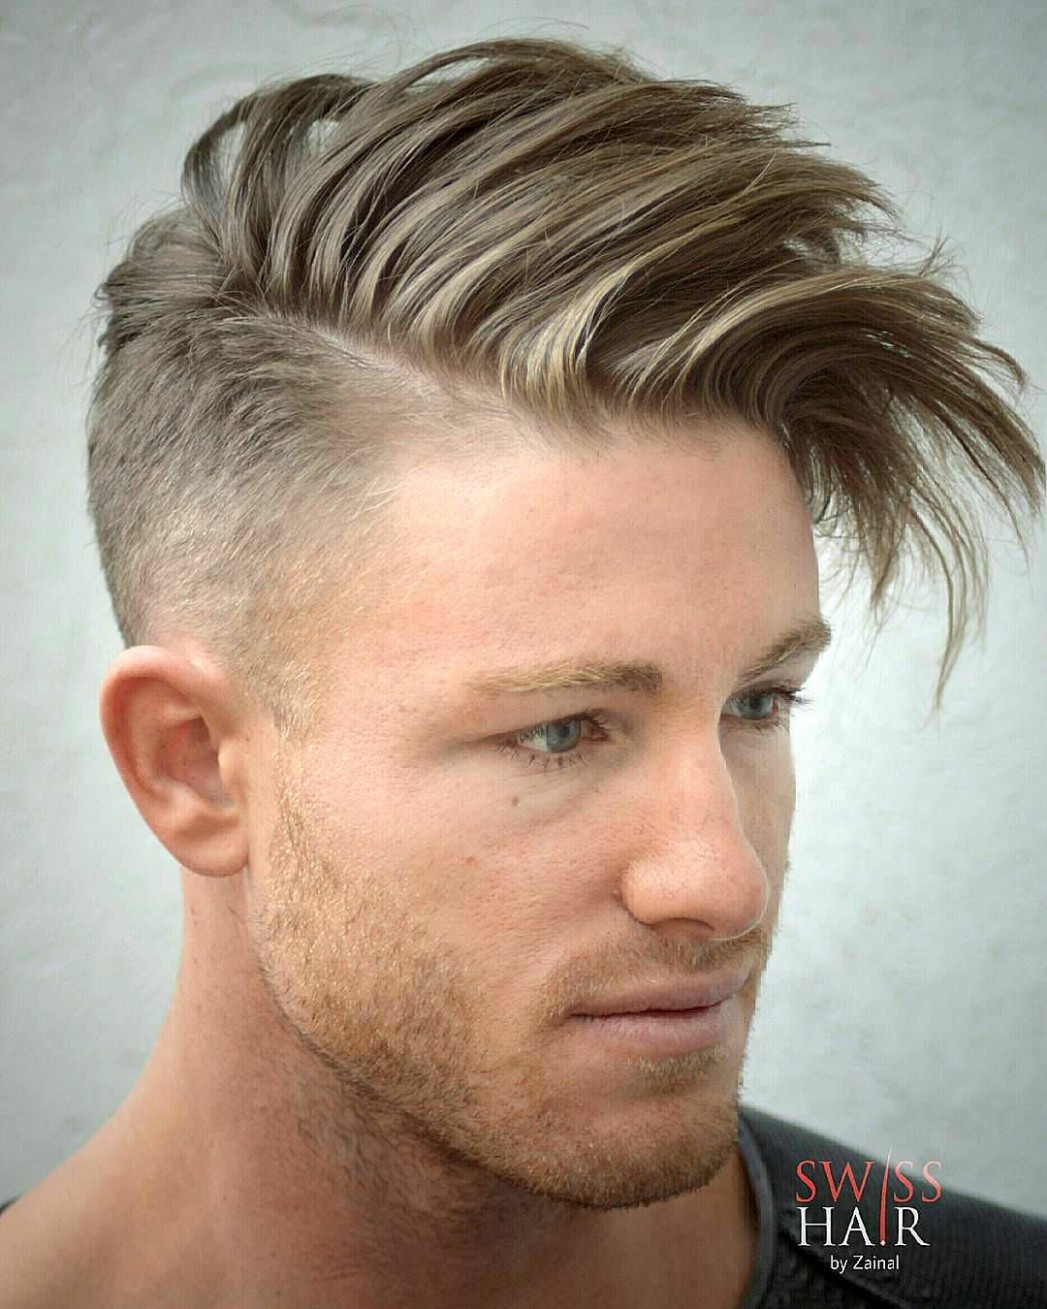 Long Hair Hairstyles For Men: 8 Cool Haircut Styles For 88 Mens Haircut Long On Top Short Sides